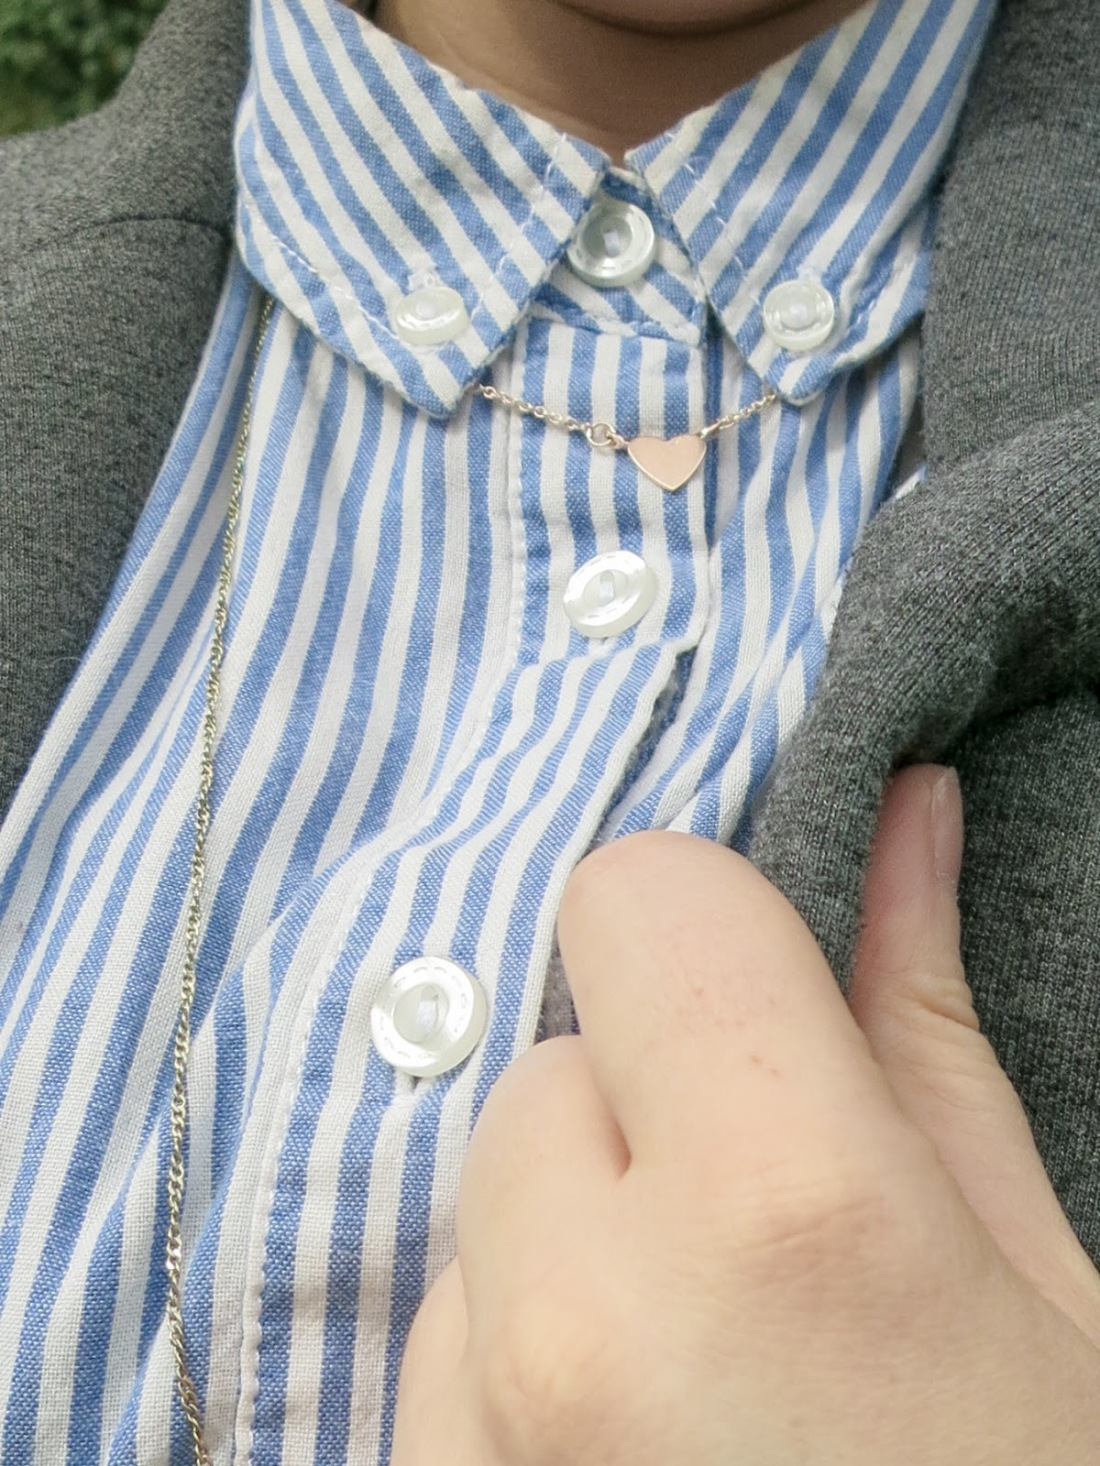 extreme close up of the shirt collar, also showing my necklaces.